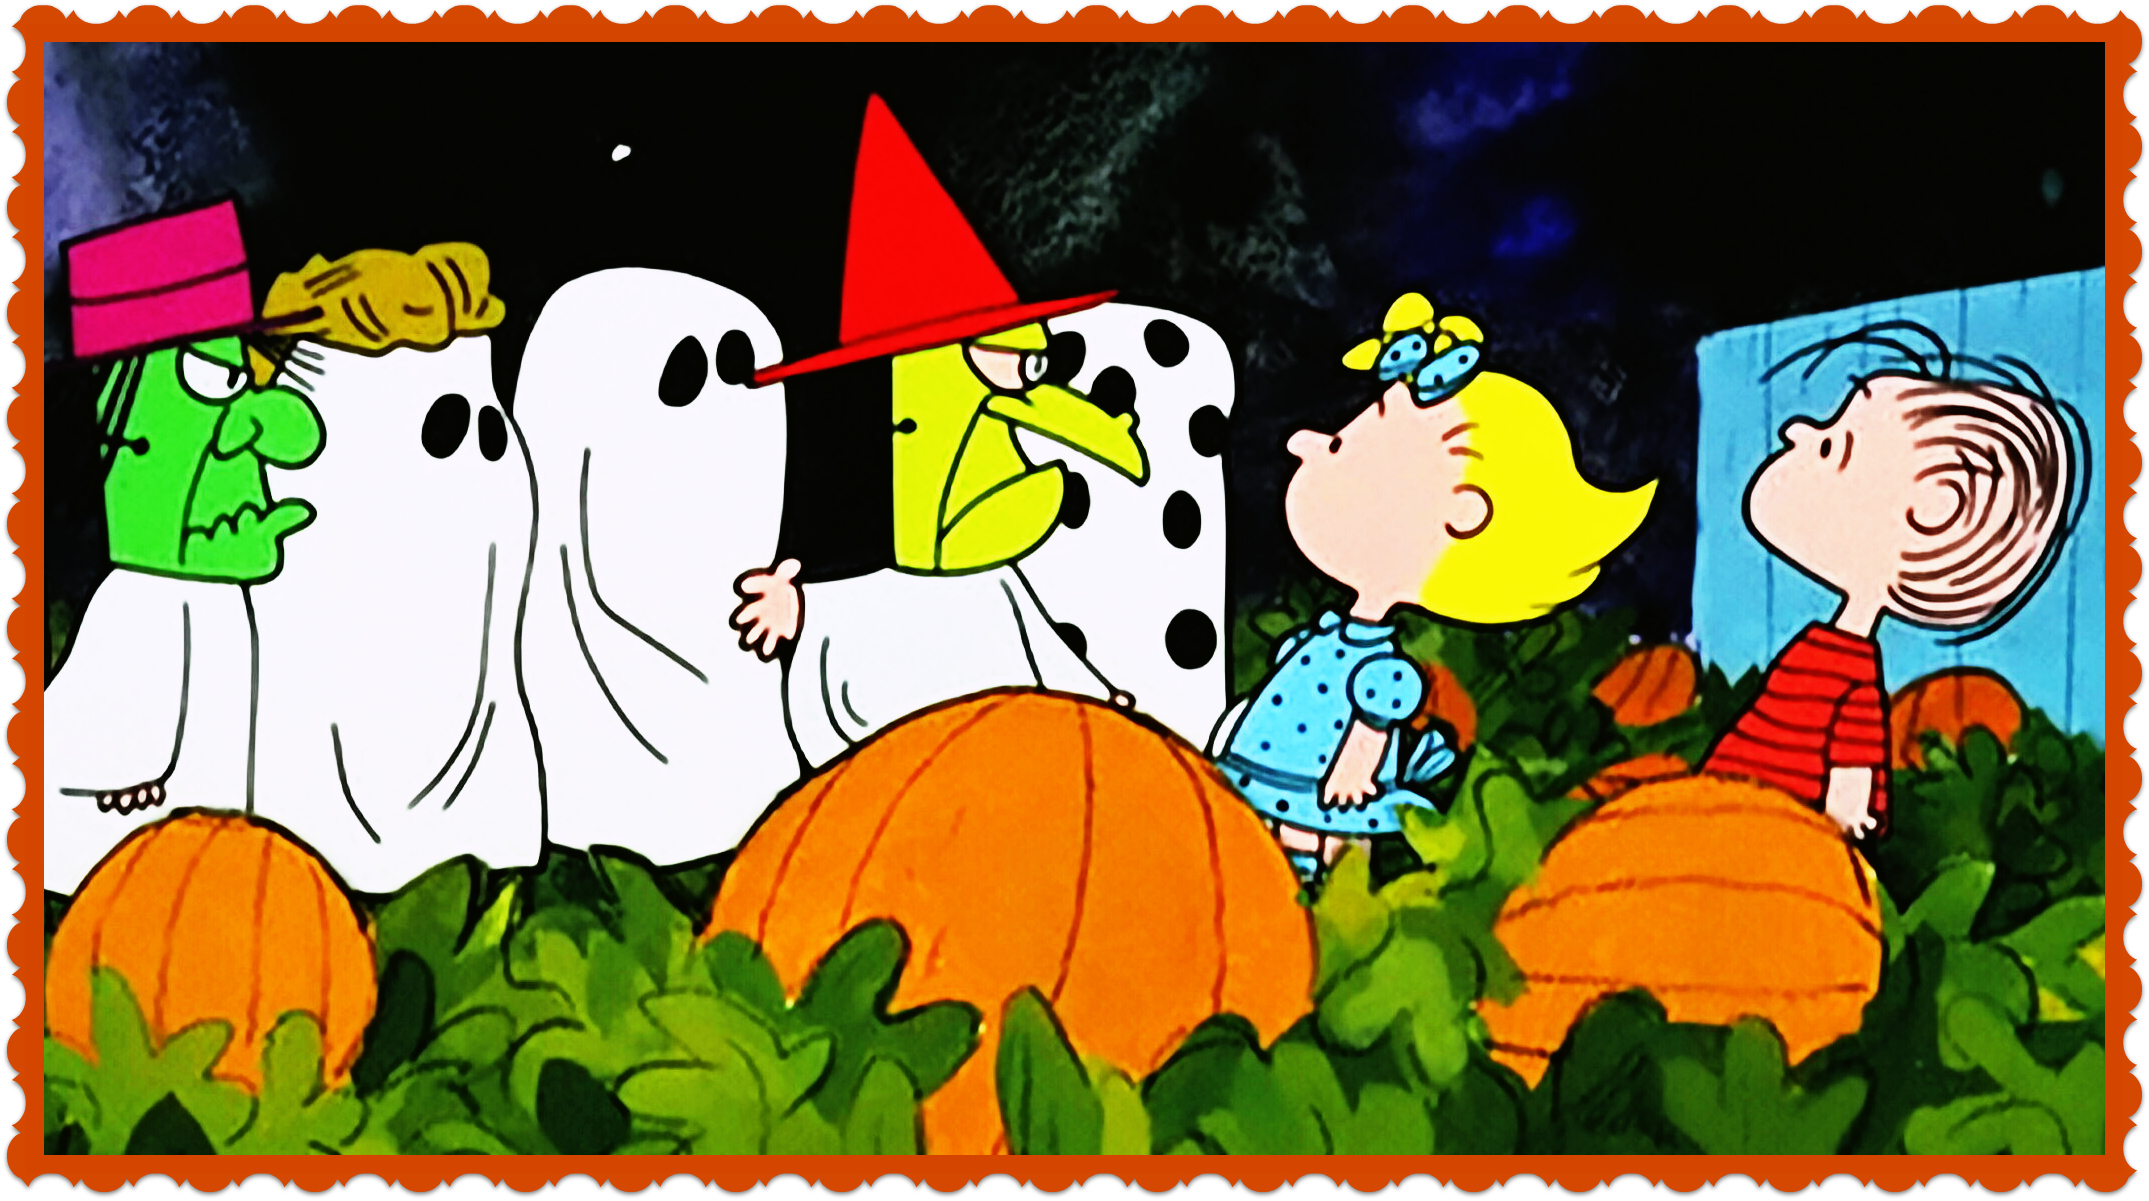 It's The Great Pumpkin Charlie Brown Quotes Clipart The Great Pumpkin Charlie Brown  Clipground